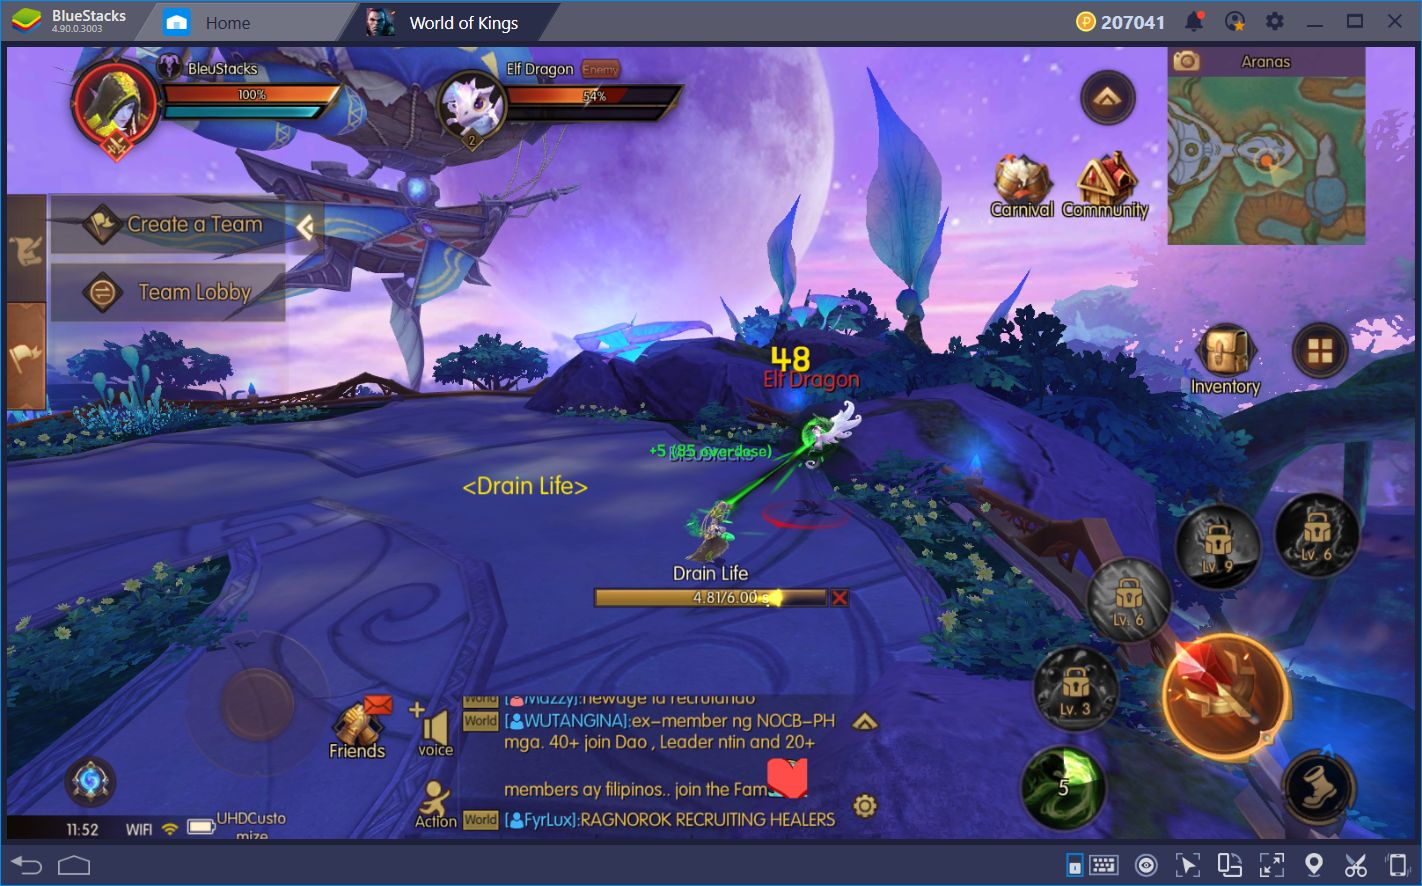 World of Kings on BlueStacks: Stunning UHD Graphics and Versatile Control Schemes